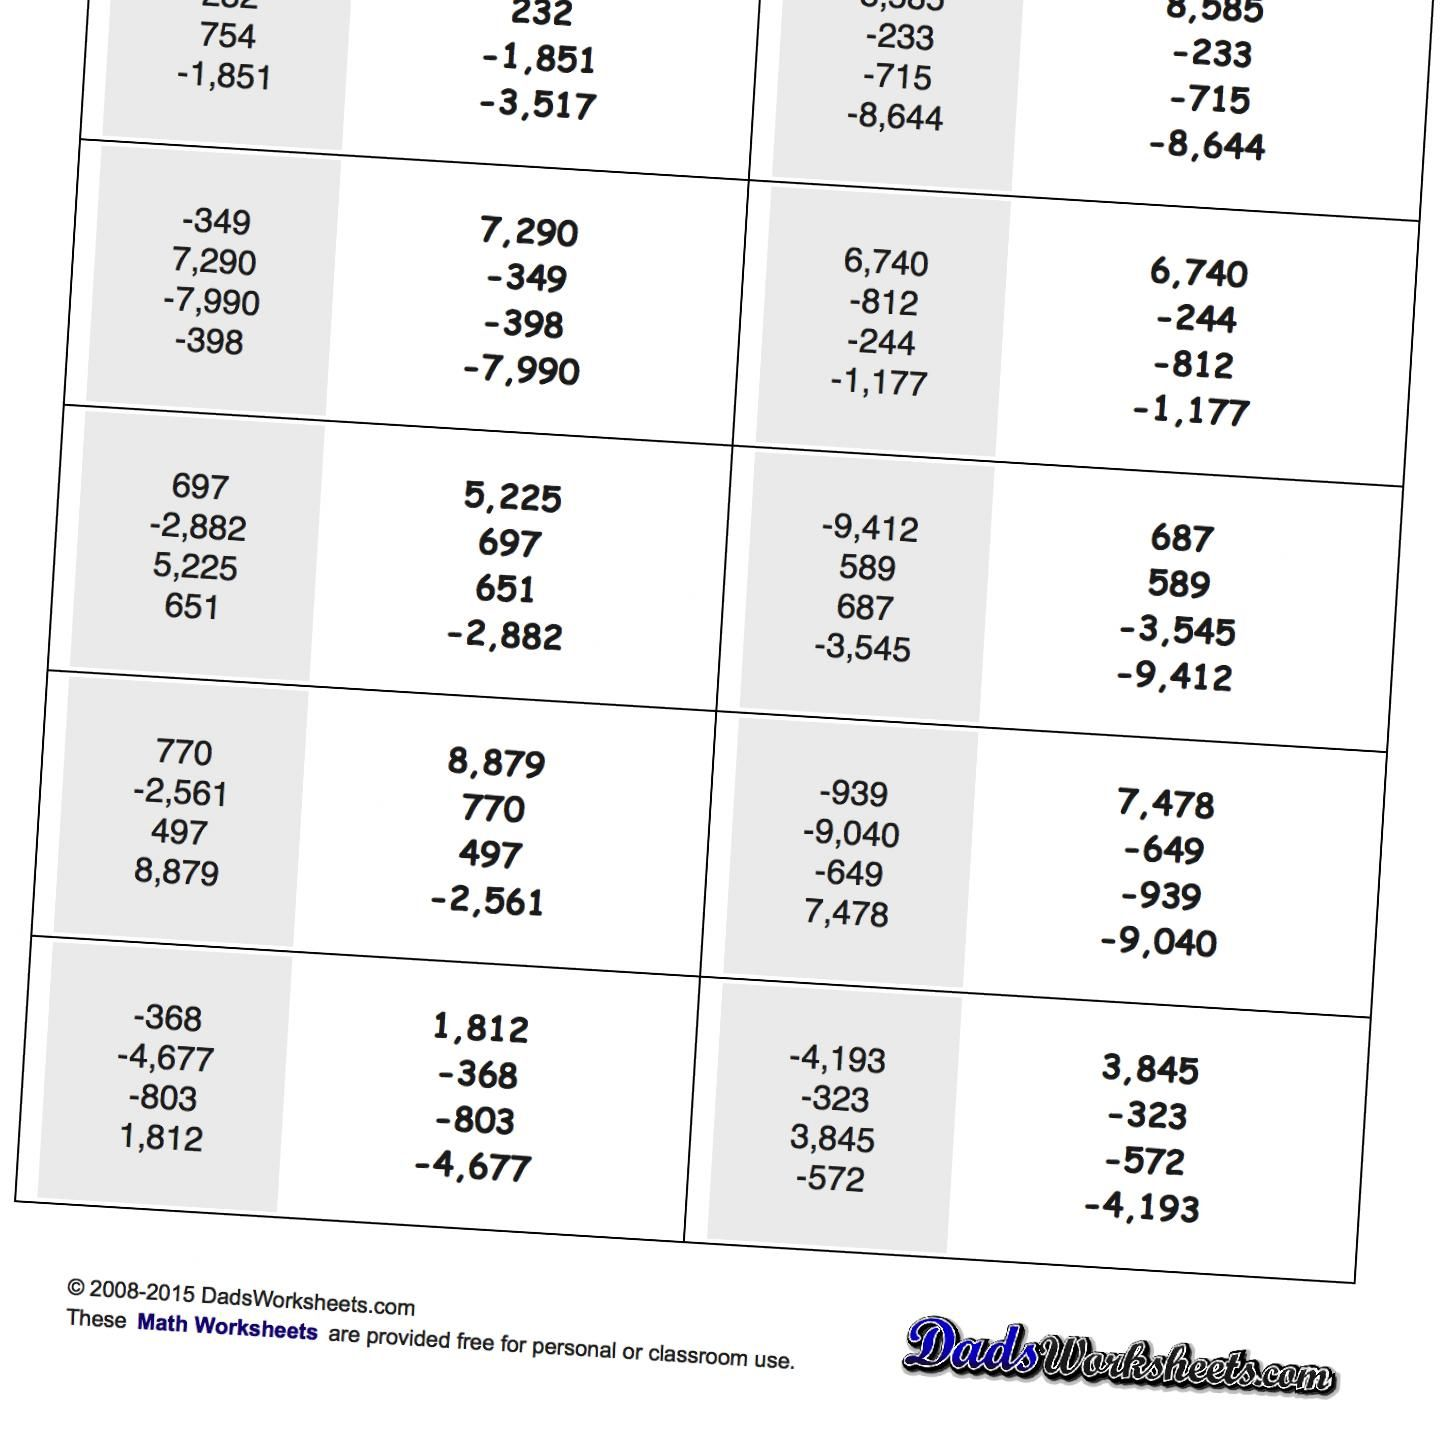 Math Worksheets Positive And Negative Mixed Place Value